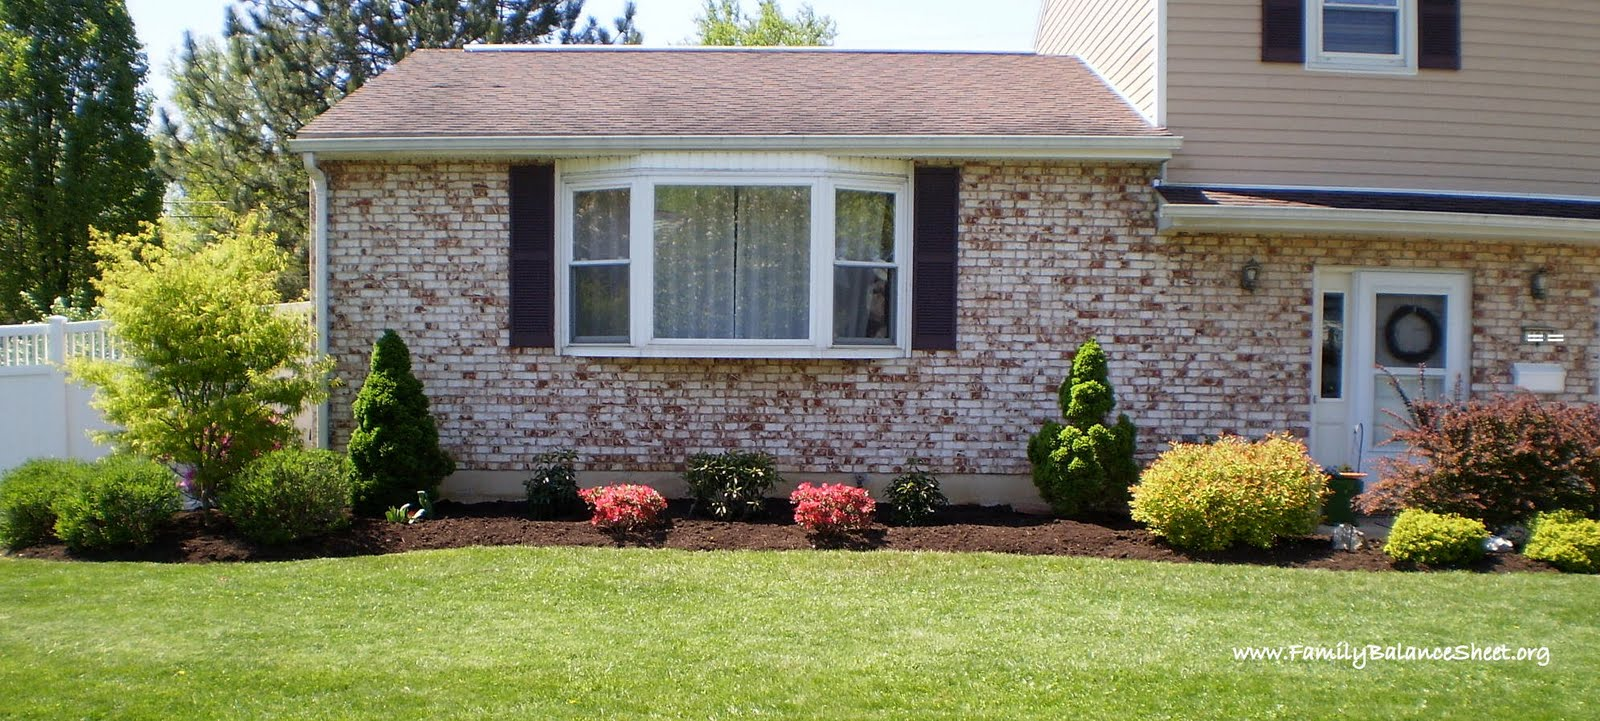 FrontYard Landscaping: 15 Tips To Help You Design Your Landscape and